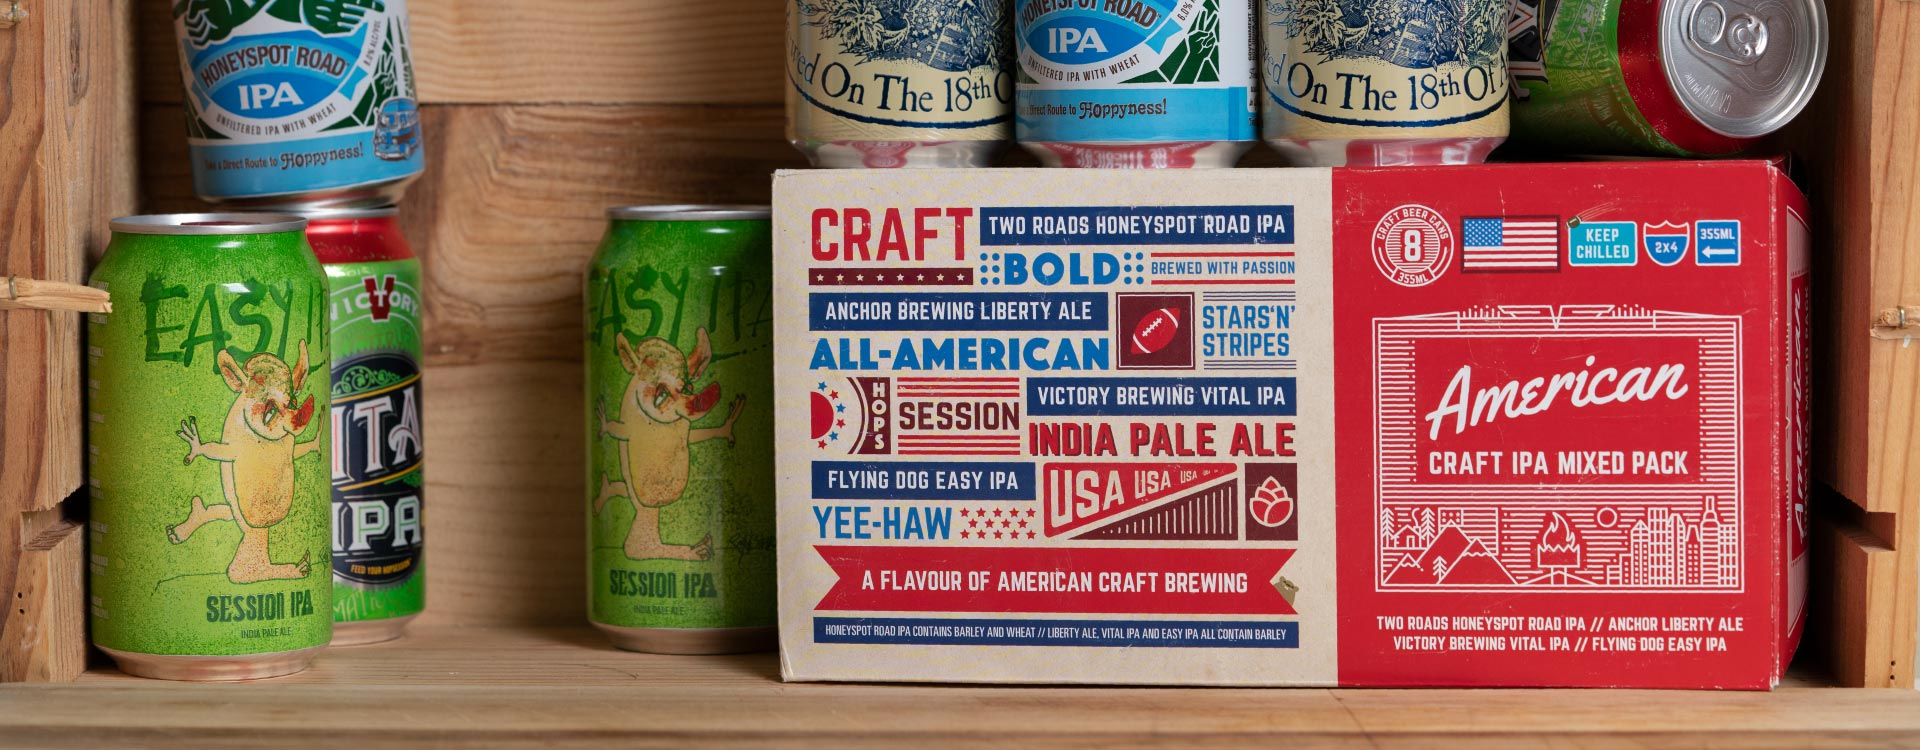 James Clay American Craft IPA product photography